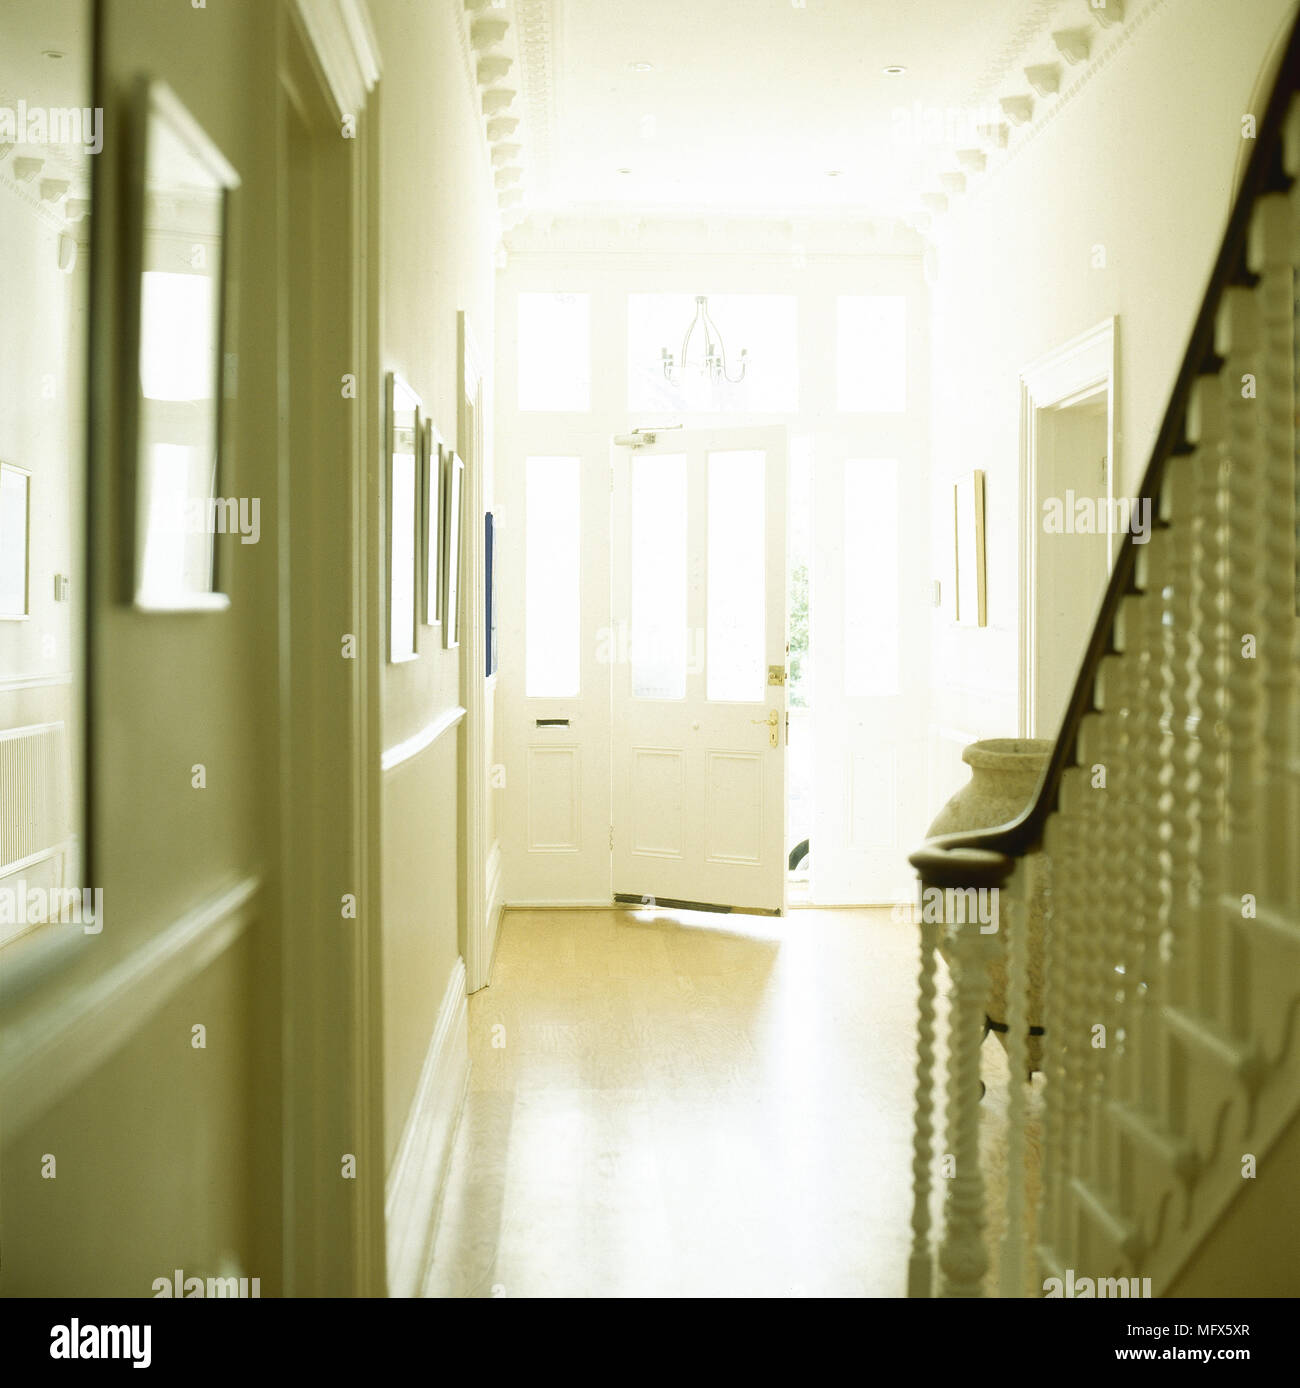 Traditional Entryway With A Tiled Floor Decorative Crown Moulding Staircase Railing And An Open Front Door Stock Photo Alamy